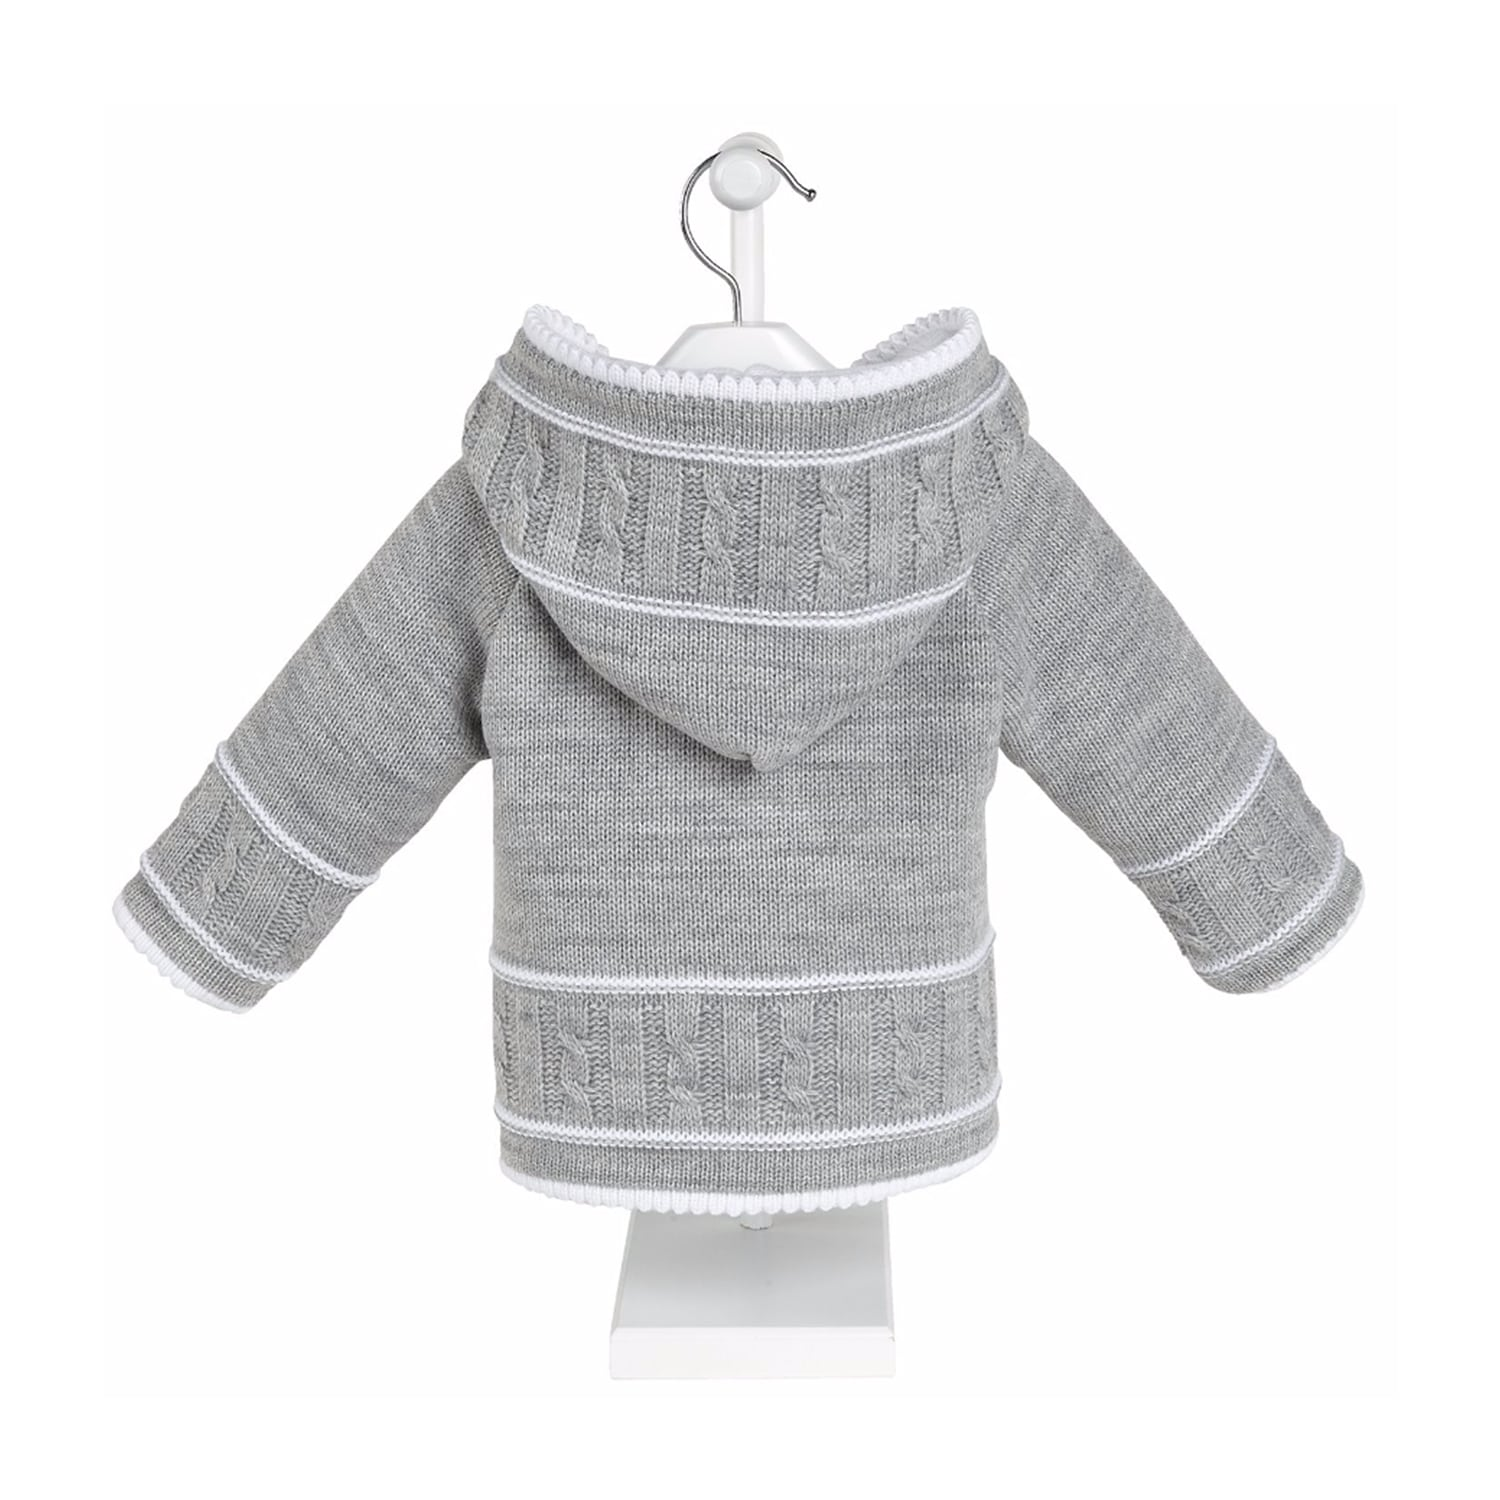 Grey knitted Baby Jacket Mary Shortle